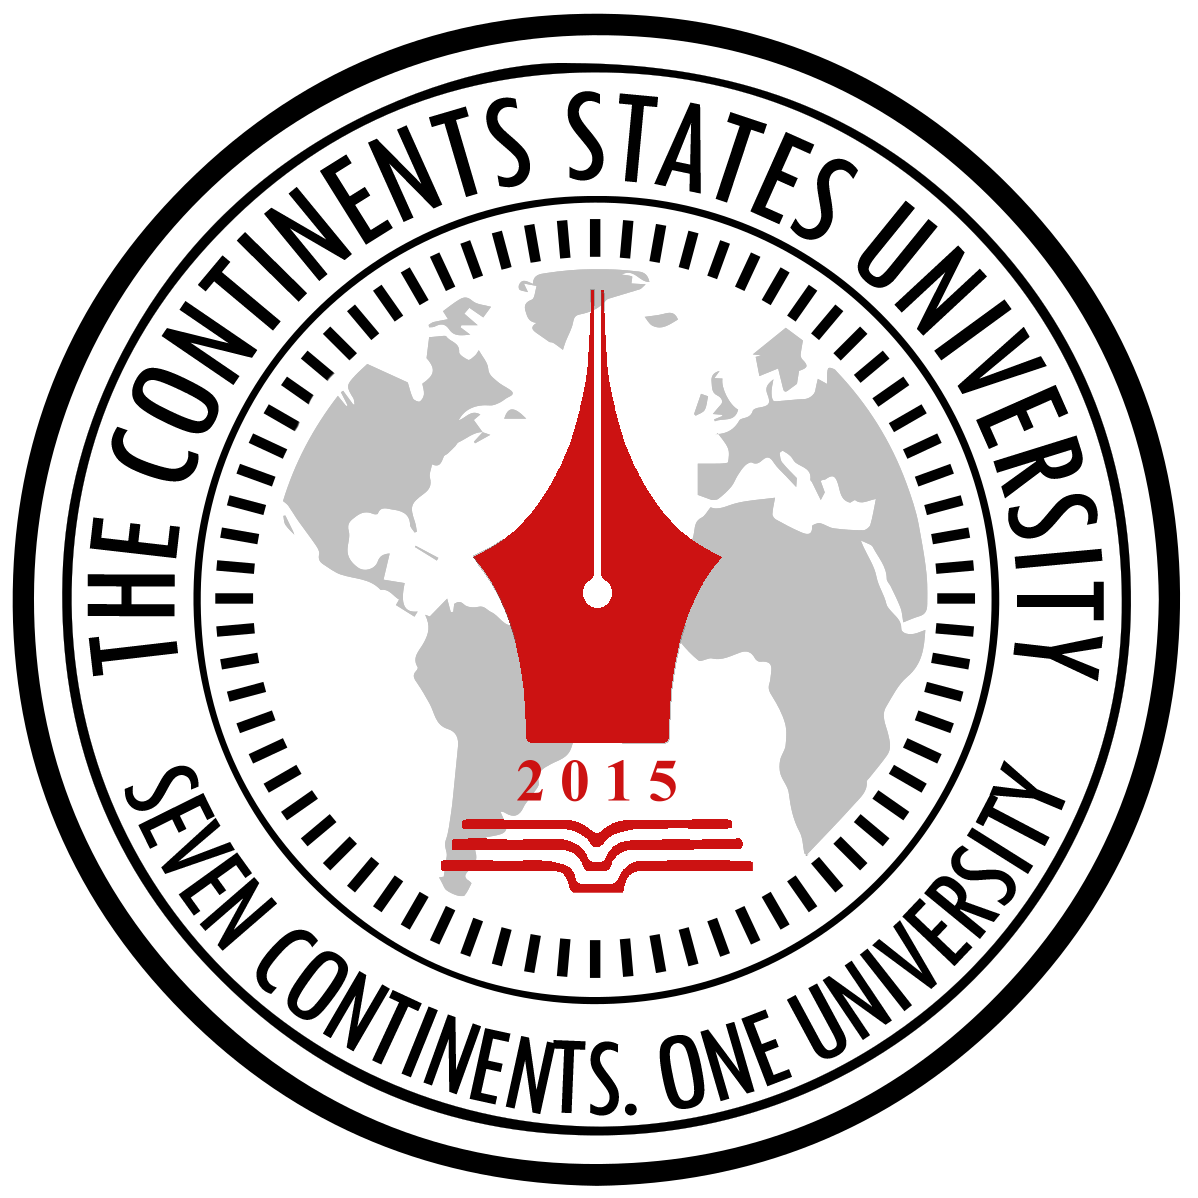 The Continents States University, Mission To Be Revealed